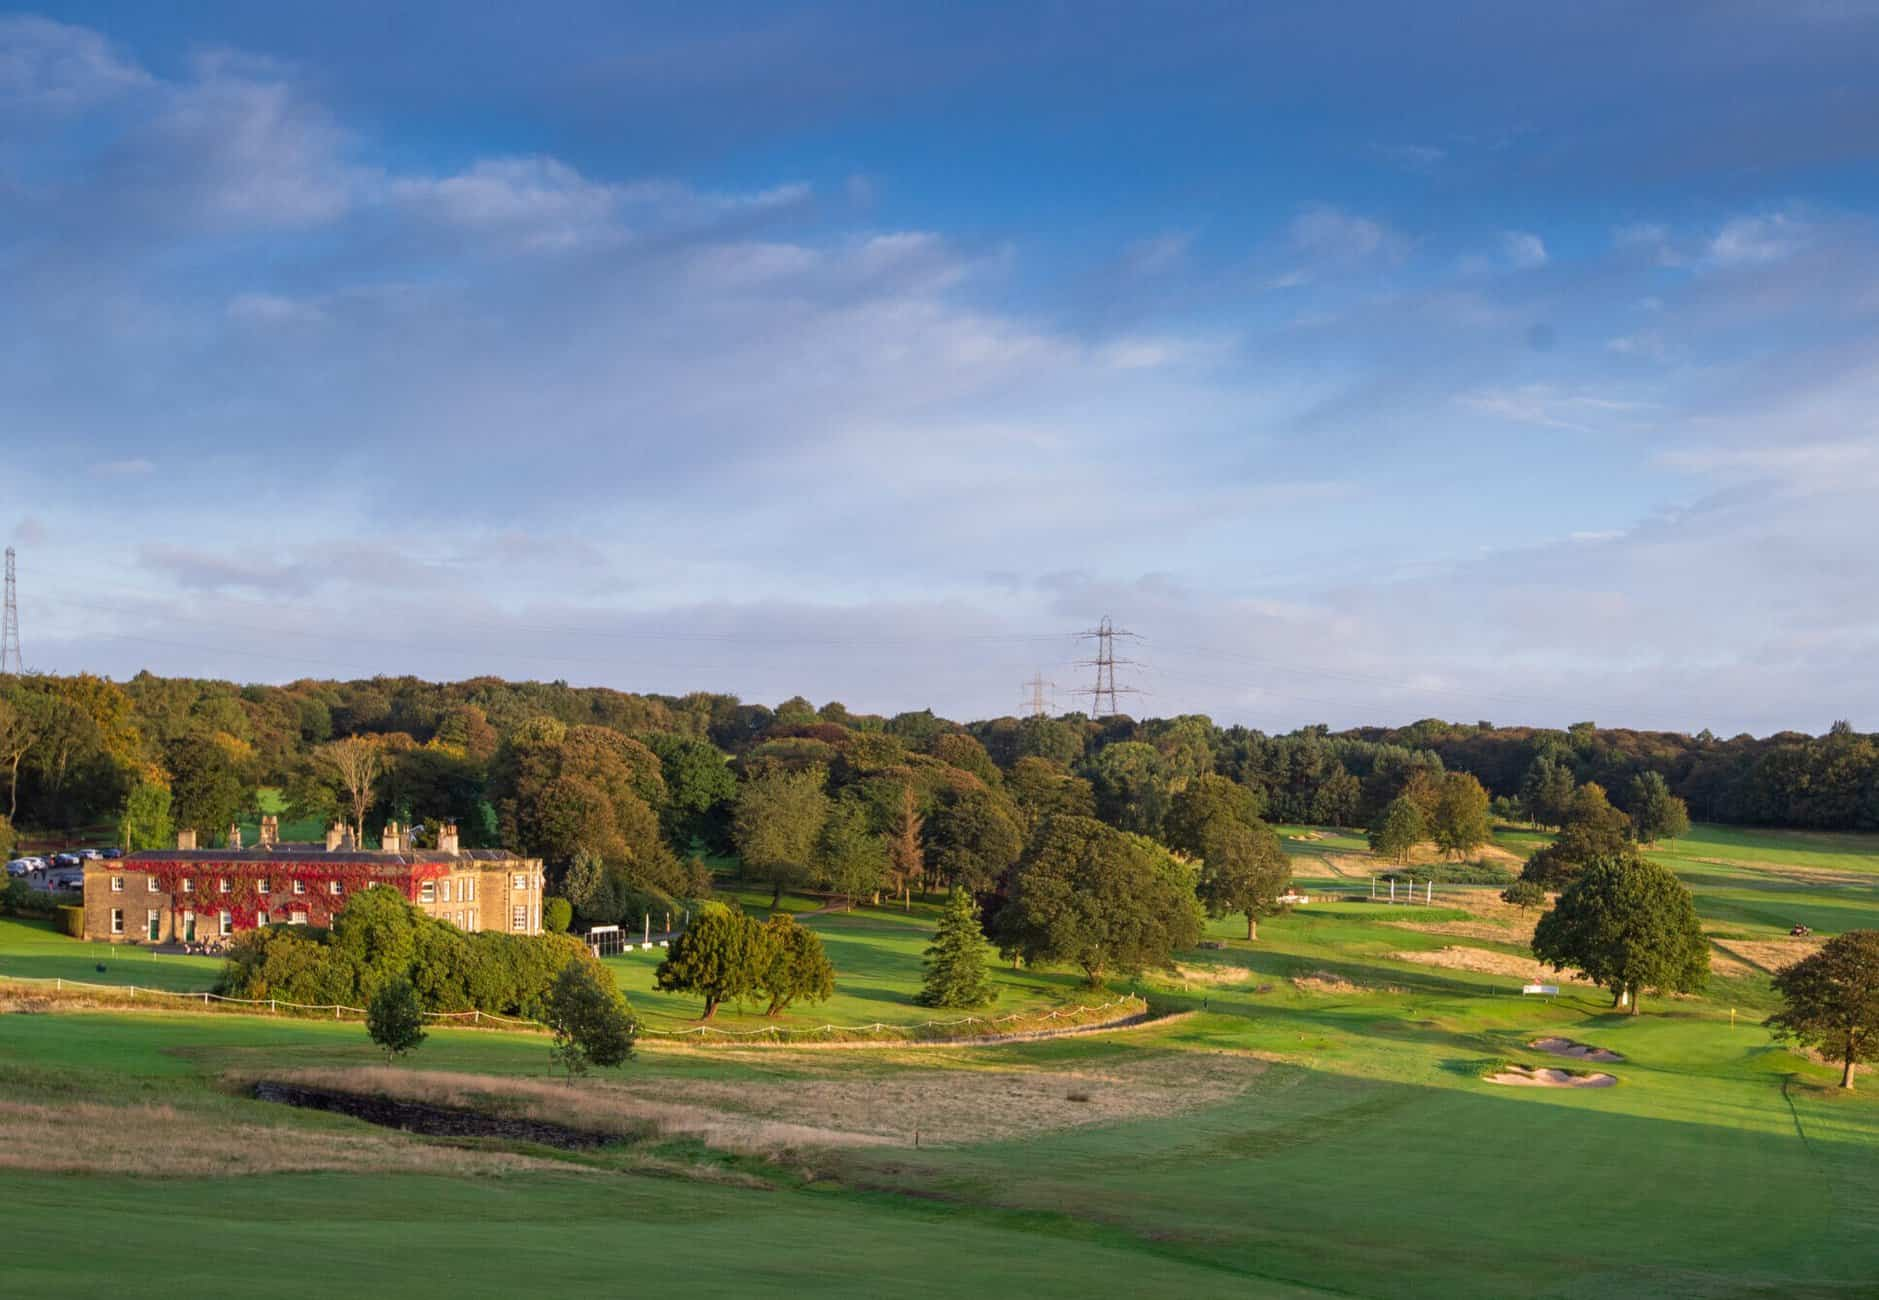 The view across the 18th at Huddersfield Golf Club